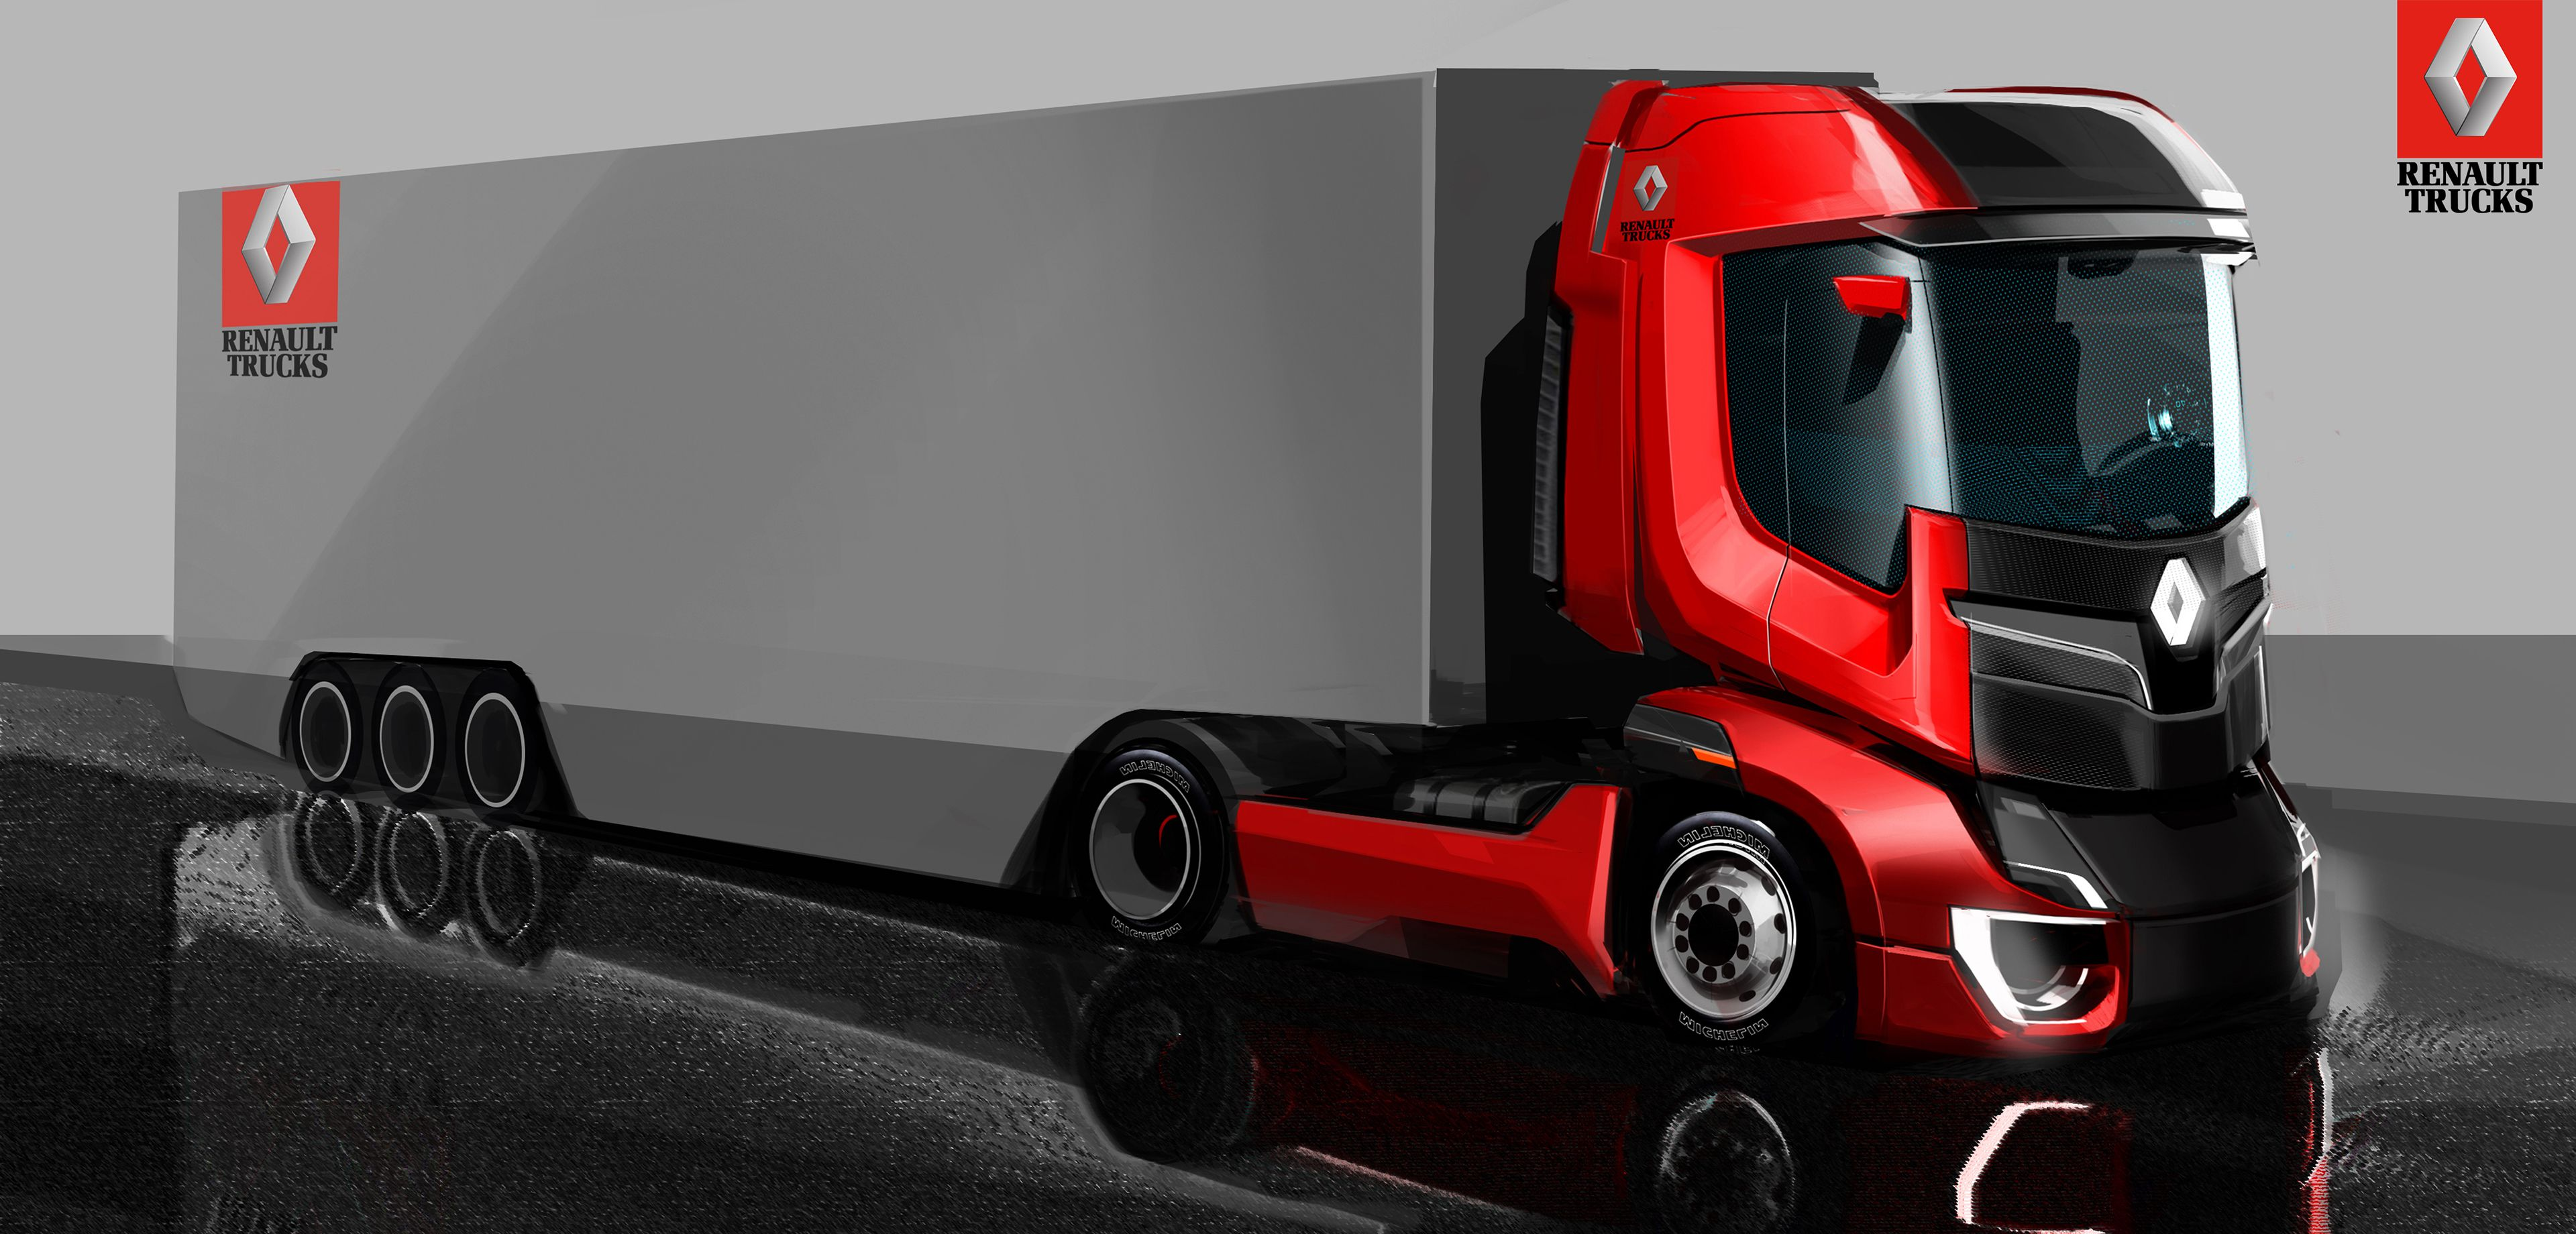 Different solutions for Next Gen Renault truck cabs | Concept cars ...